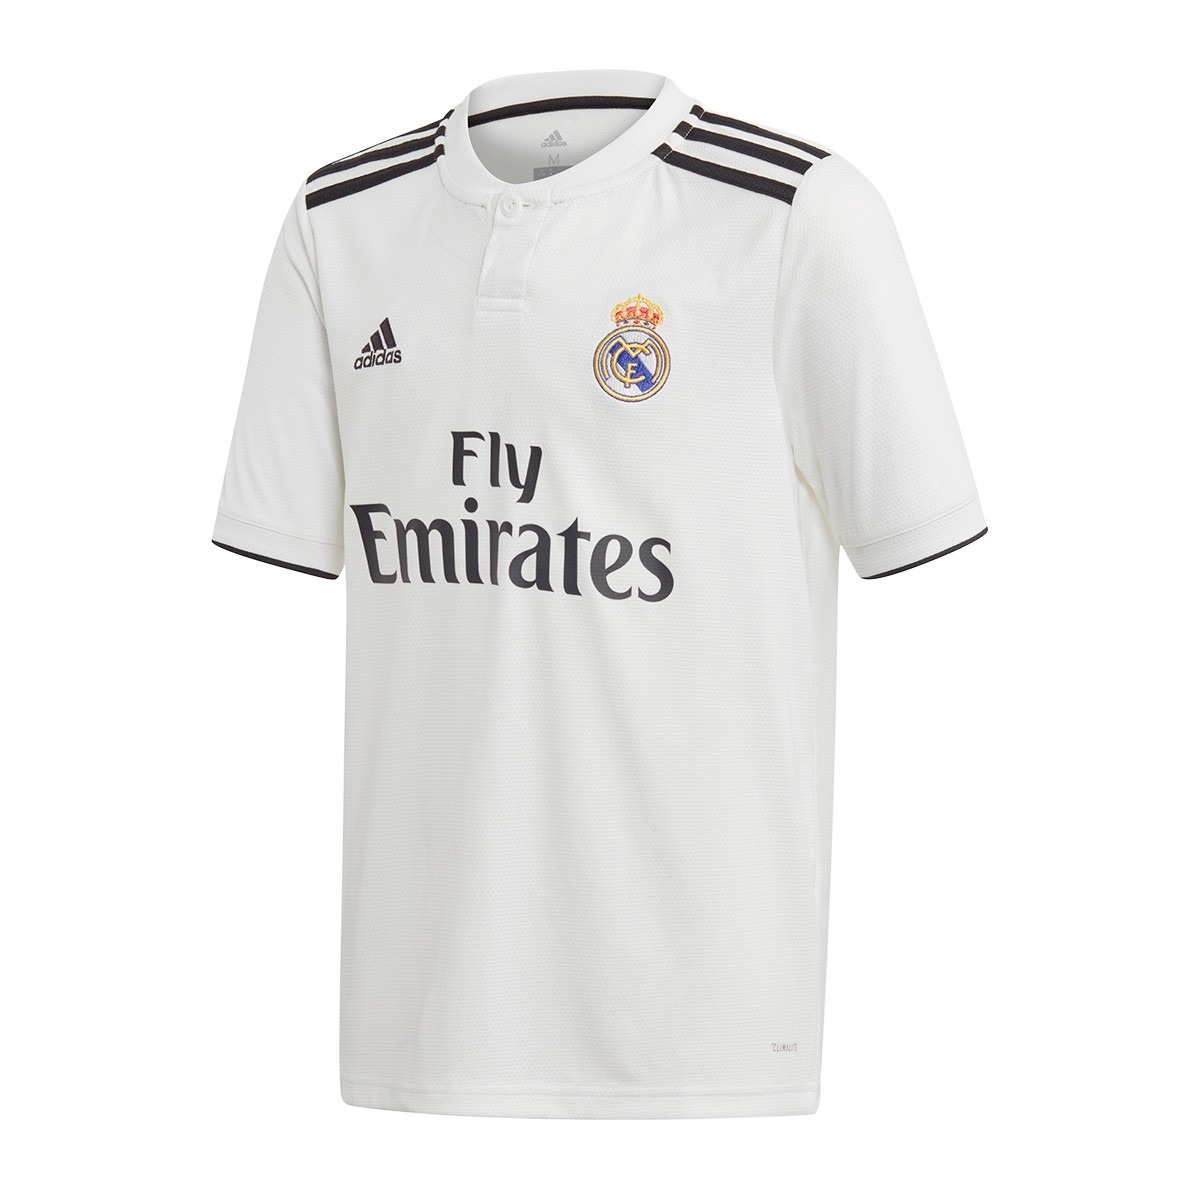 7f32c93dae960 Cargando zoom... camiseta local real madrid 2019 adidas personalizado gratis